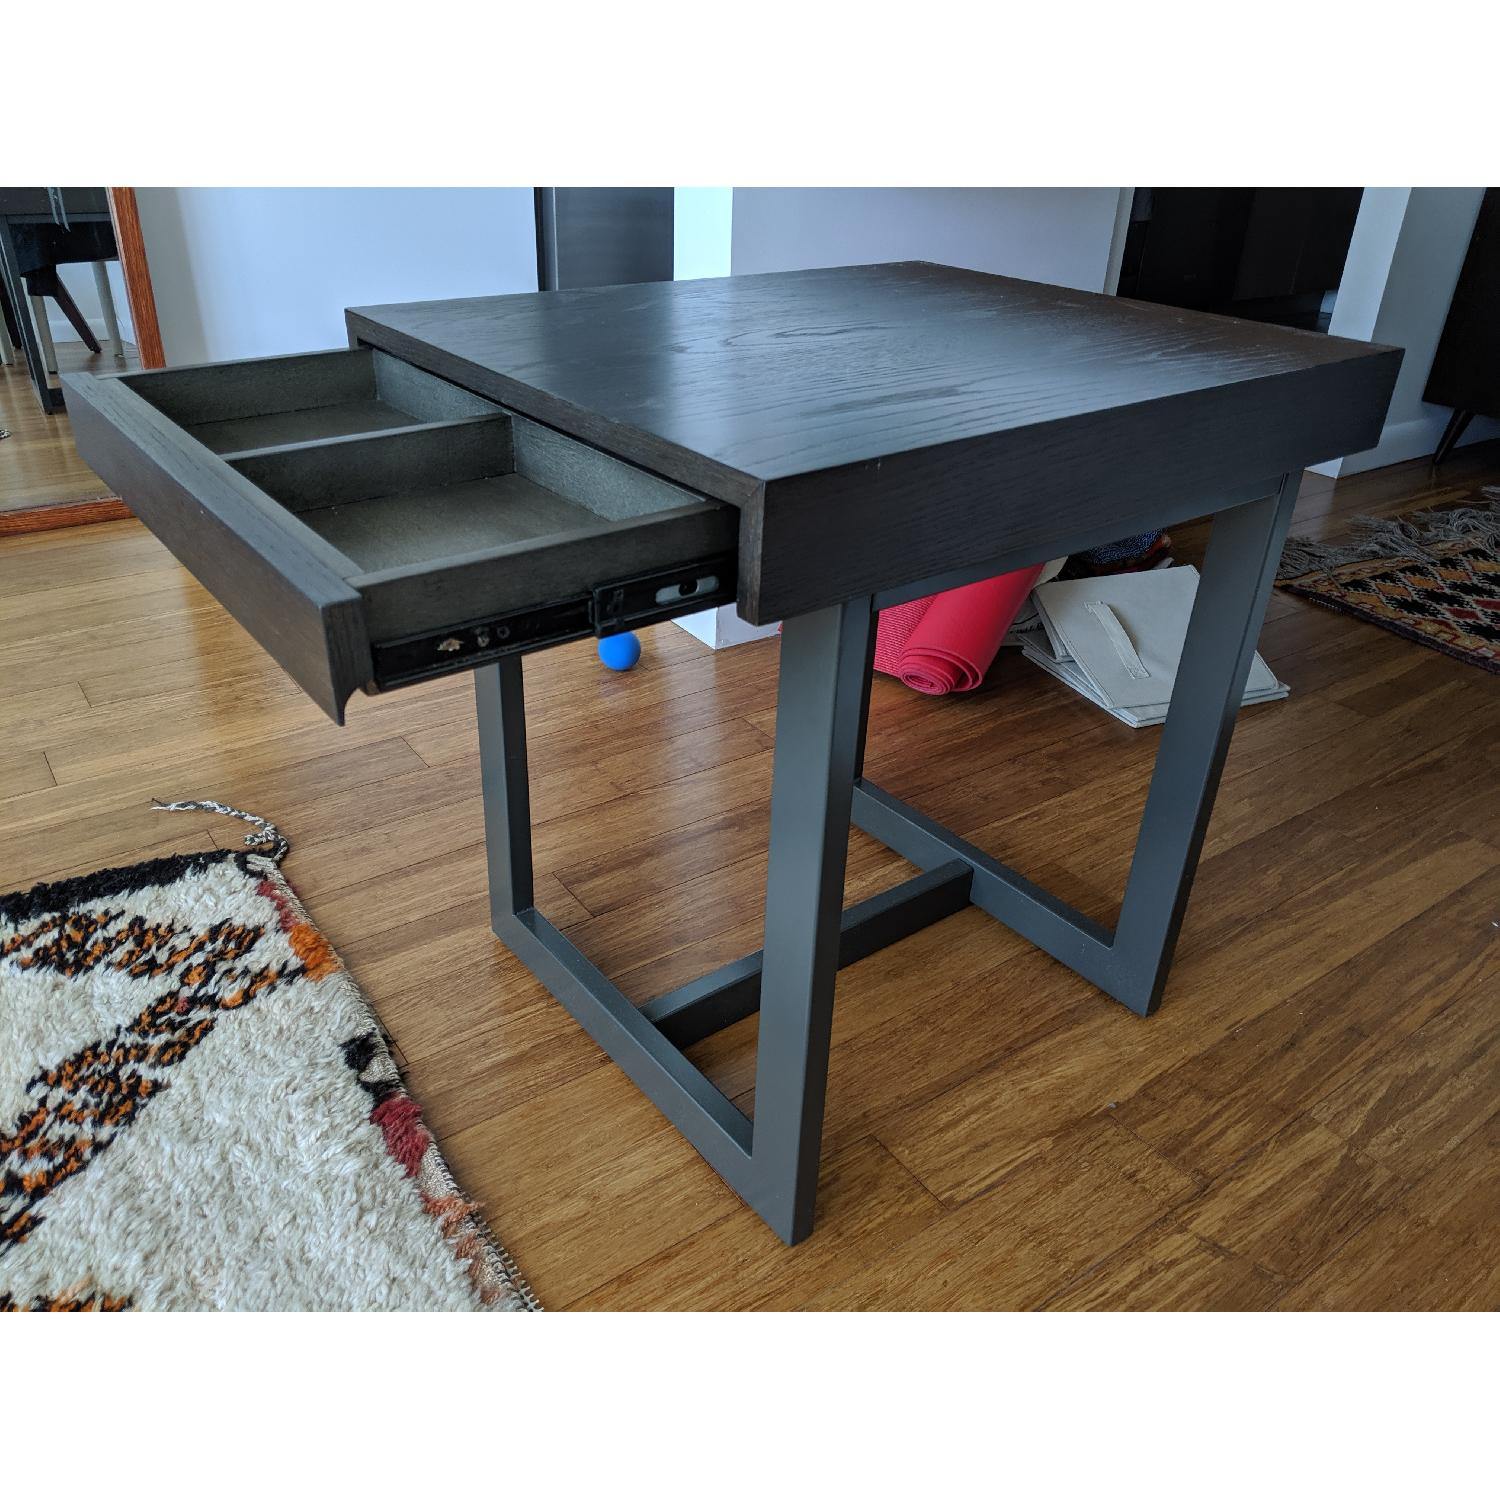 Crate & Barrel Archive End Table - image-1